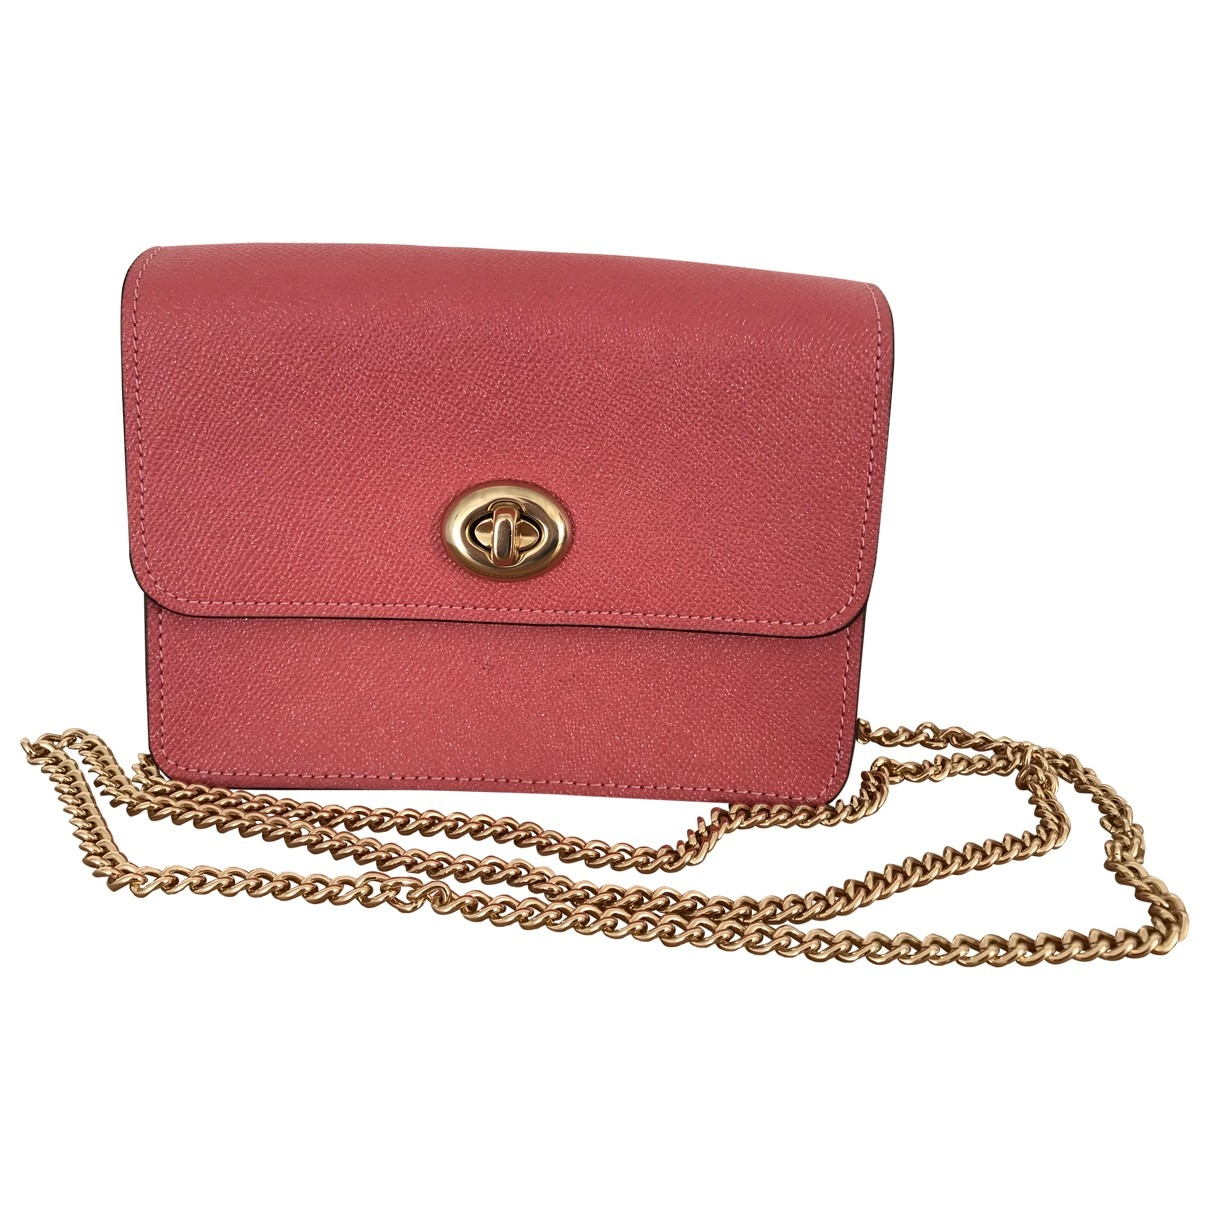 Coach \N Pink Leather Clutch bag for Women \N